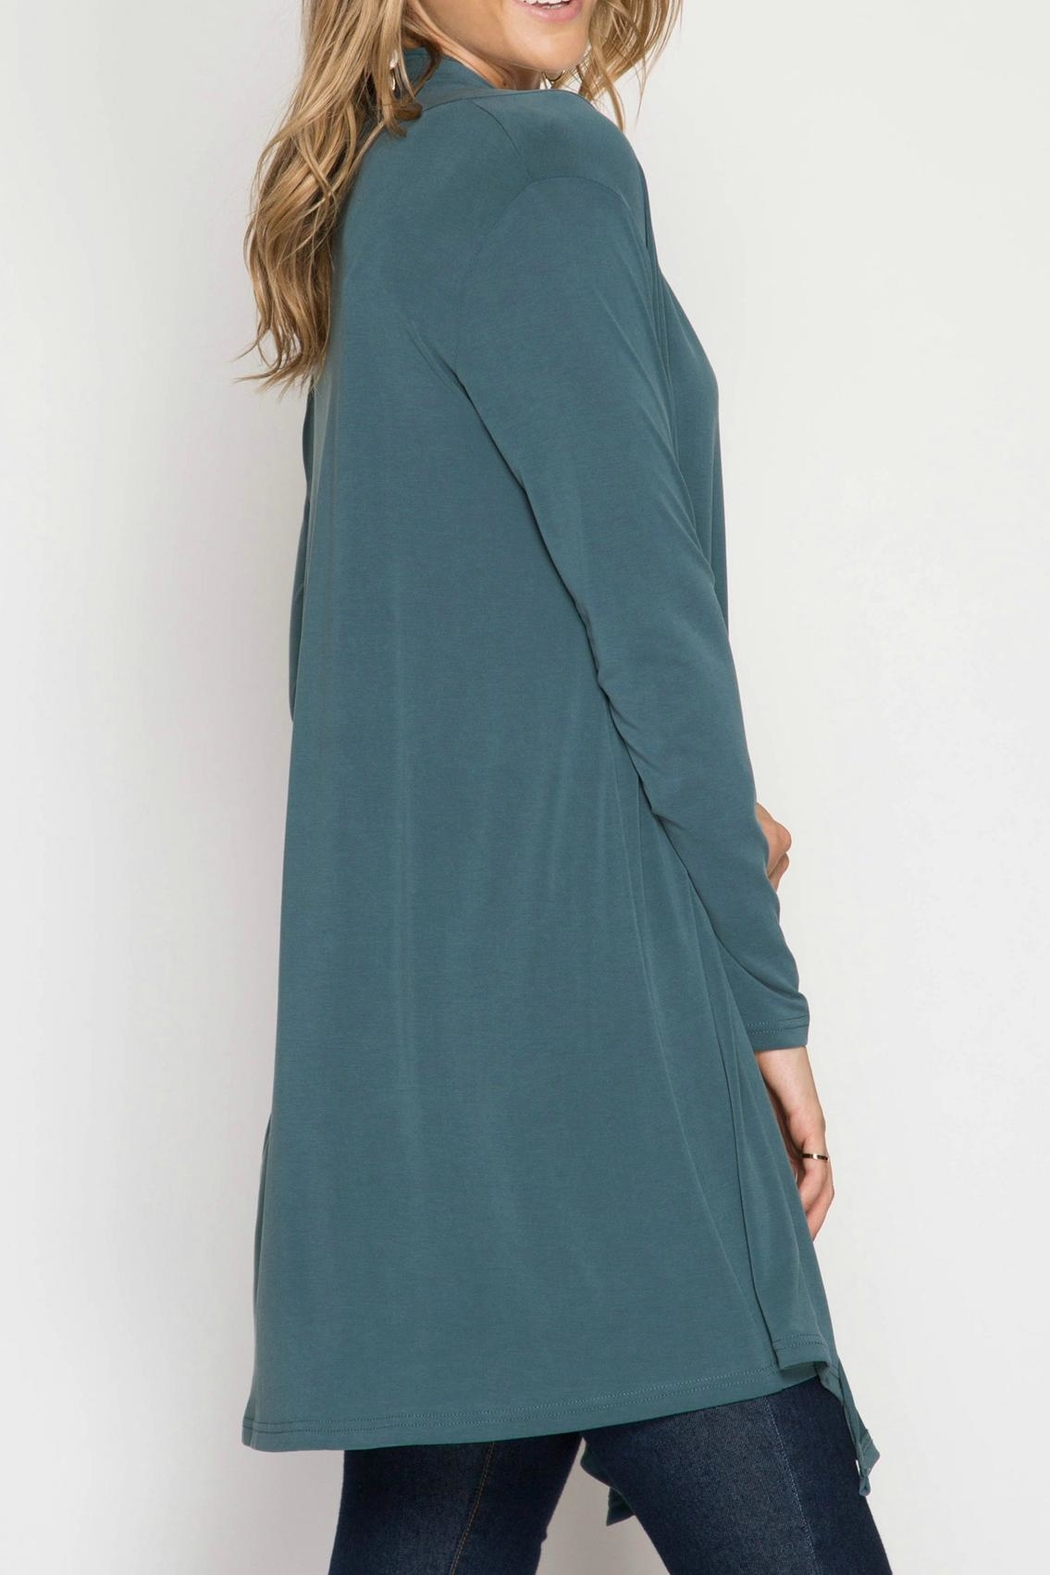 She + Sky Long Open Cardigan - Front Full Image